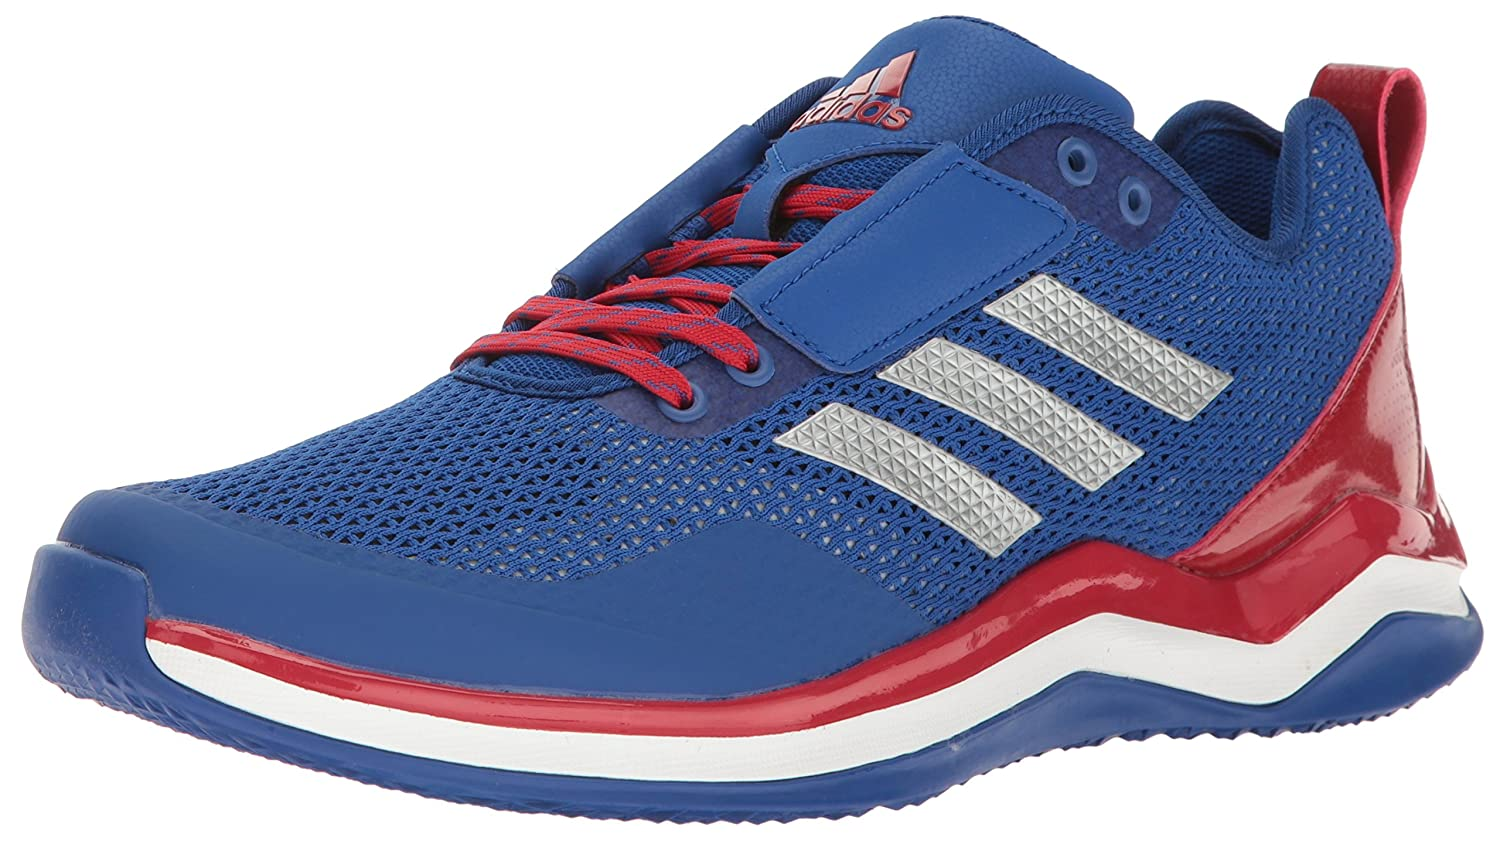 Collegiate Royal Metallic argent Power rouge Adidas Speed Trainer 3.0 Synthétique Baskets 46 EU